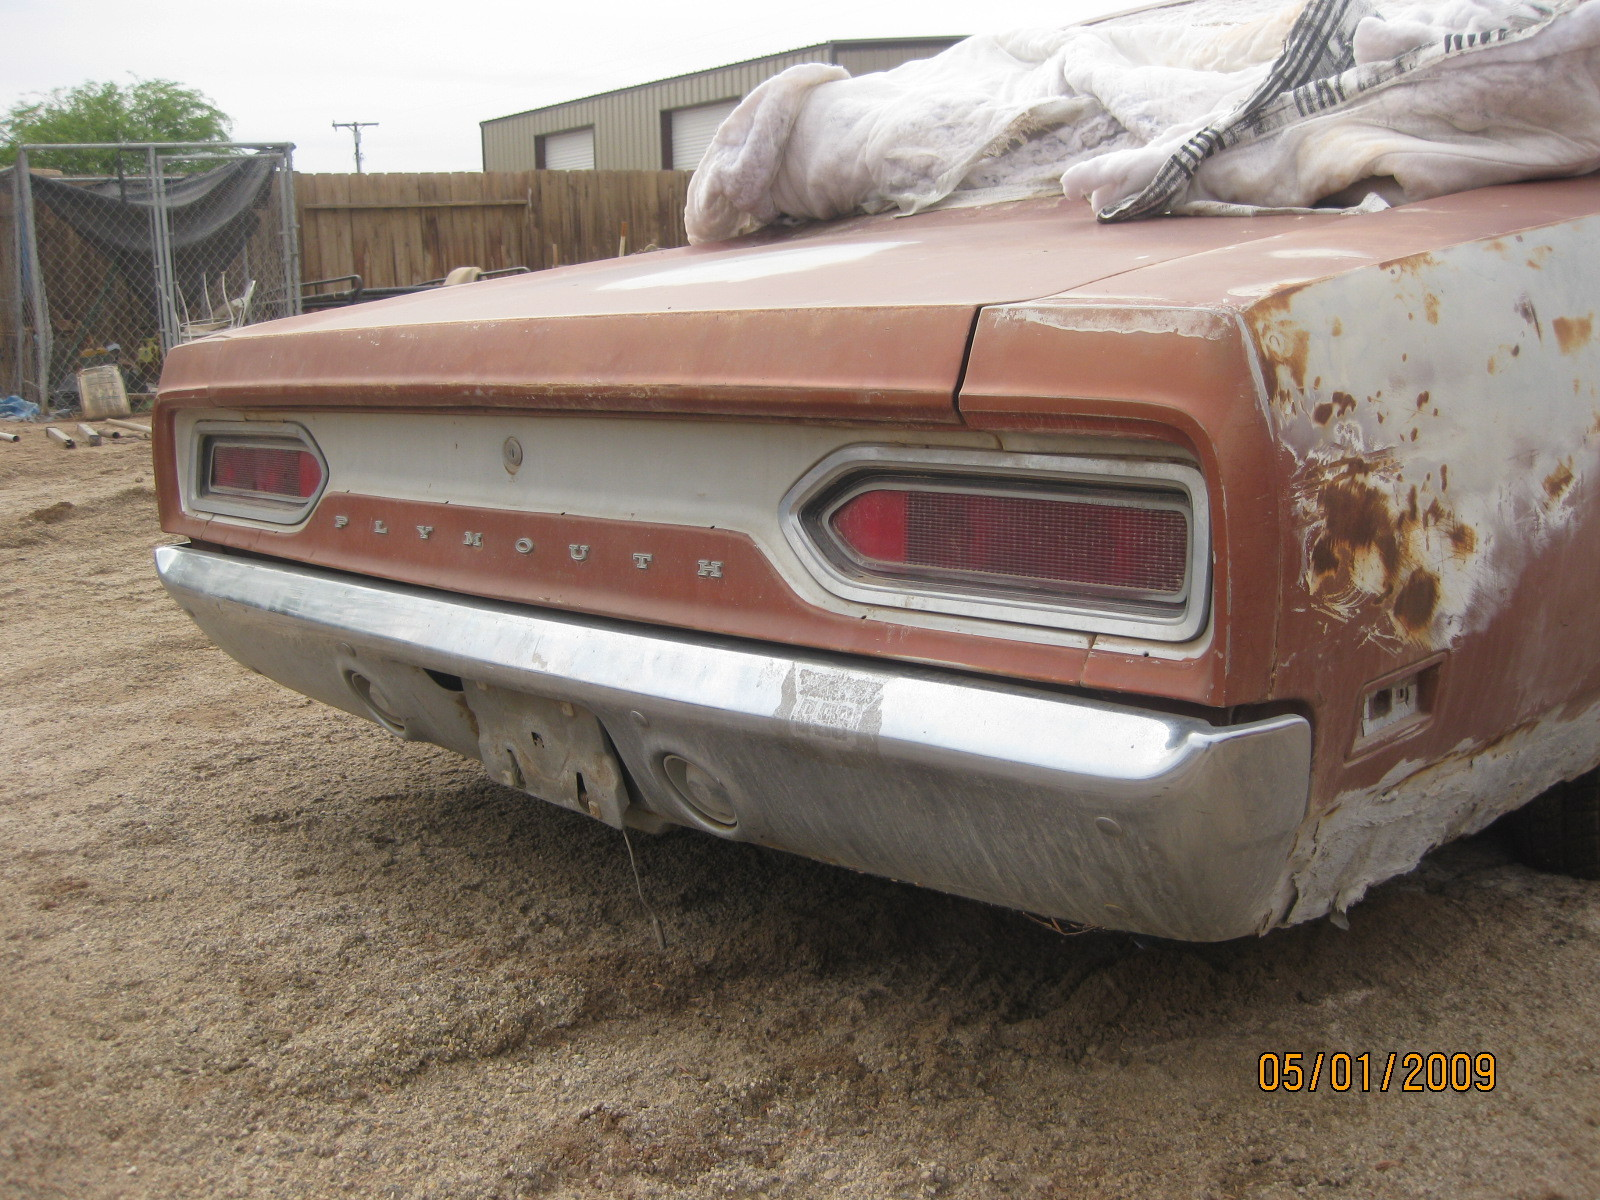 383satellite's 1970 Plymouth Satellite